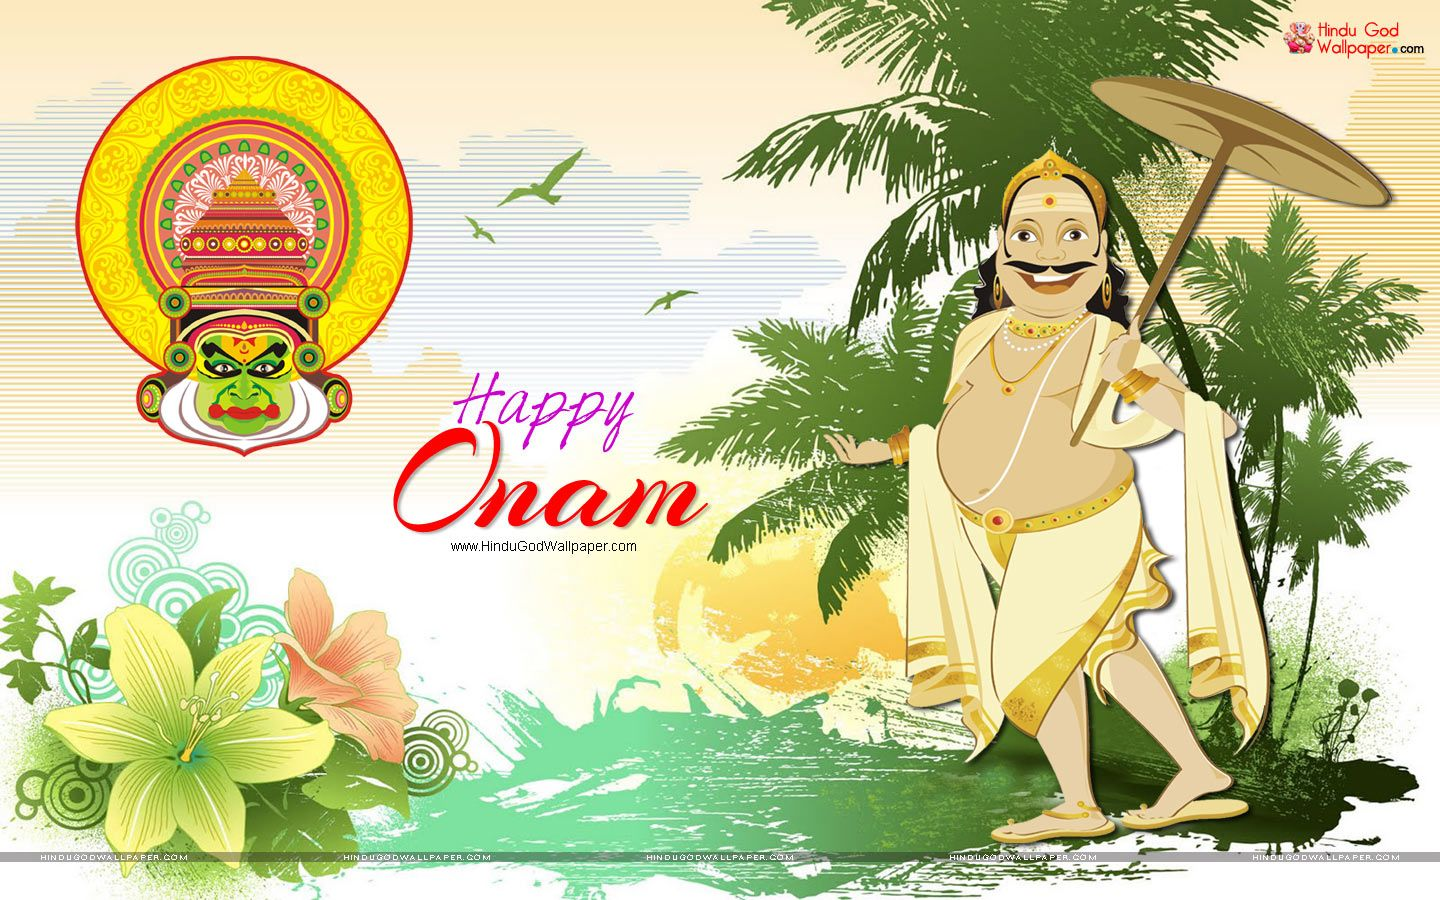 Pin by god images on onam images pinterest wallpaper downloads onam kristyandbryce Image collections